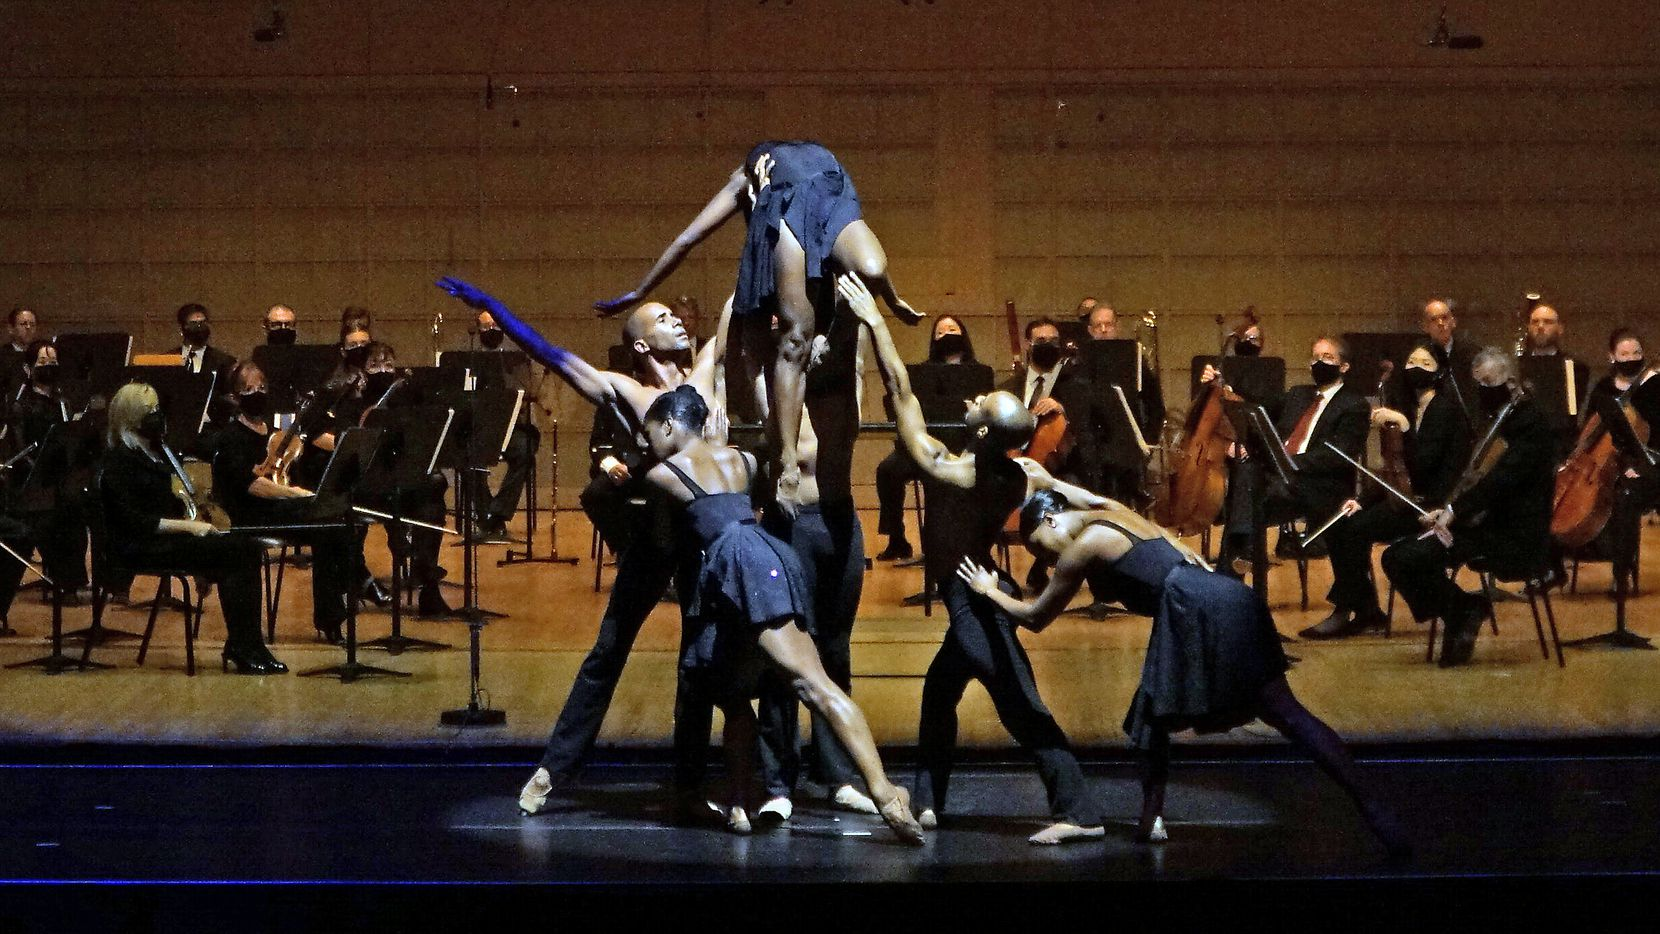 The Dallas Black Dance Theatre performs with the Dallas Symphony Orchestra at the Meyerson Symphony Center in Dallas on Nov. 11.